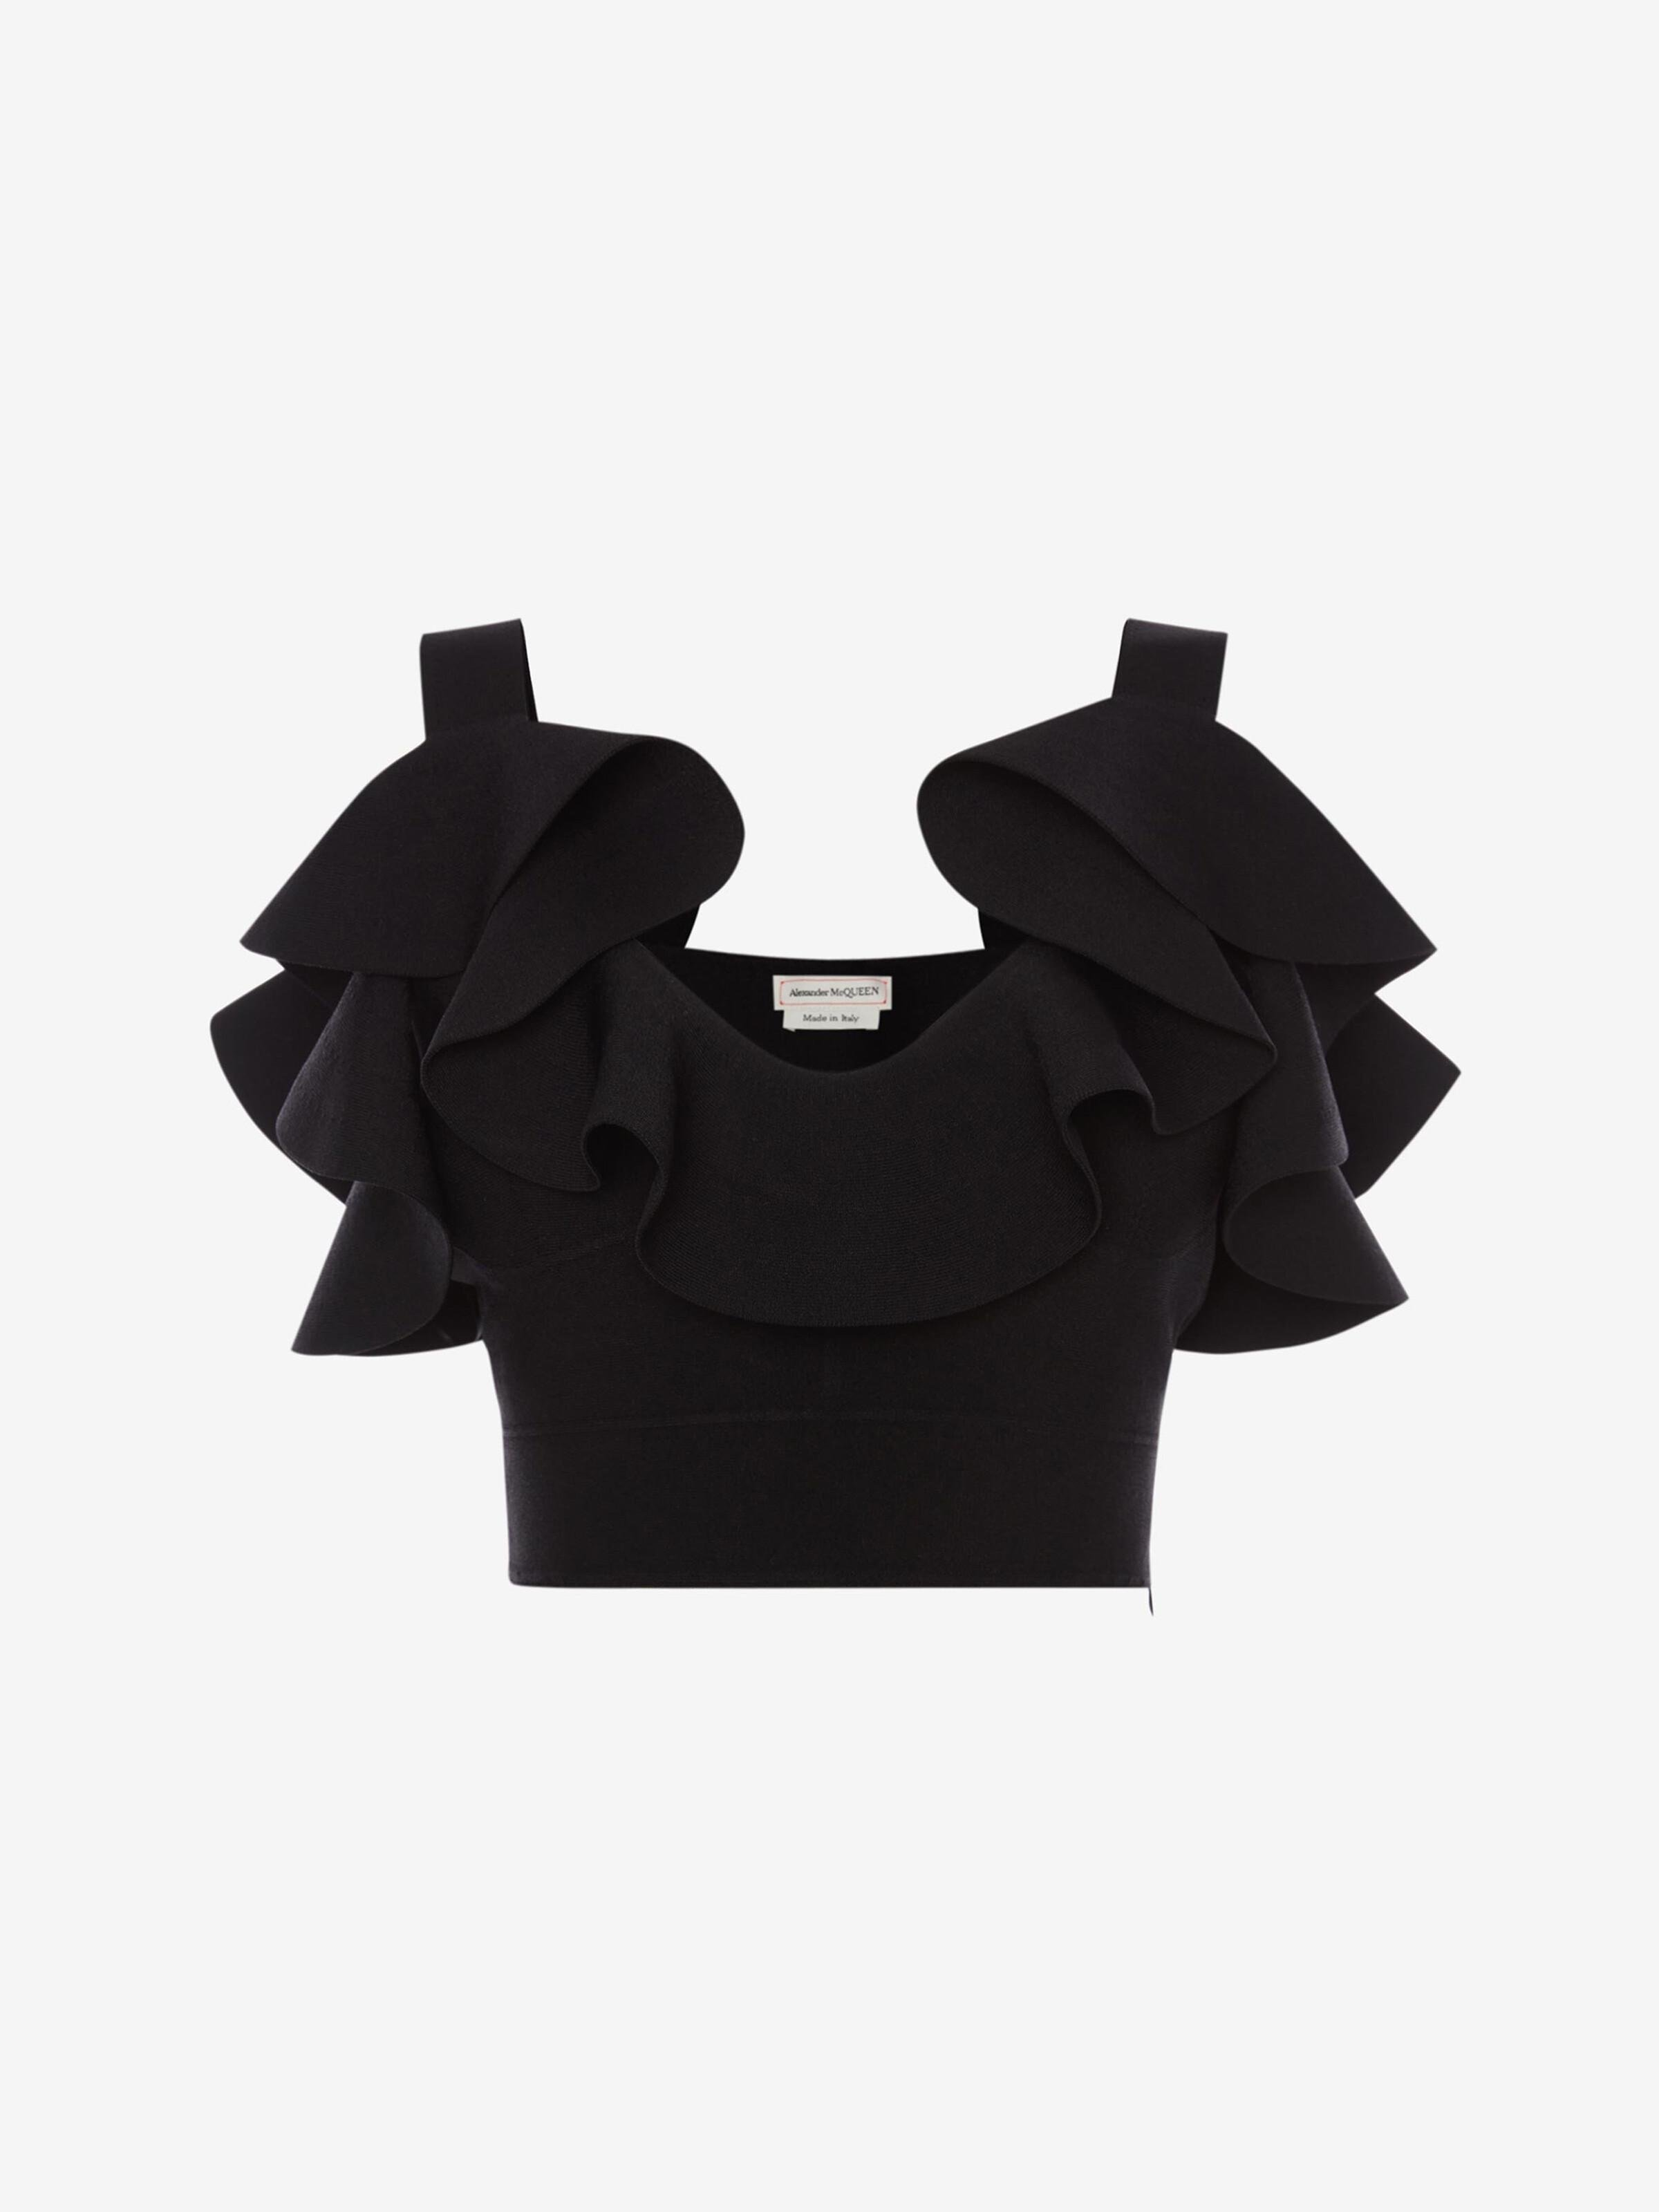 Engineered Sculpted Knit Top 3